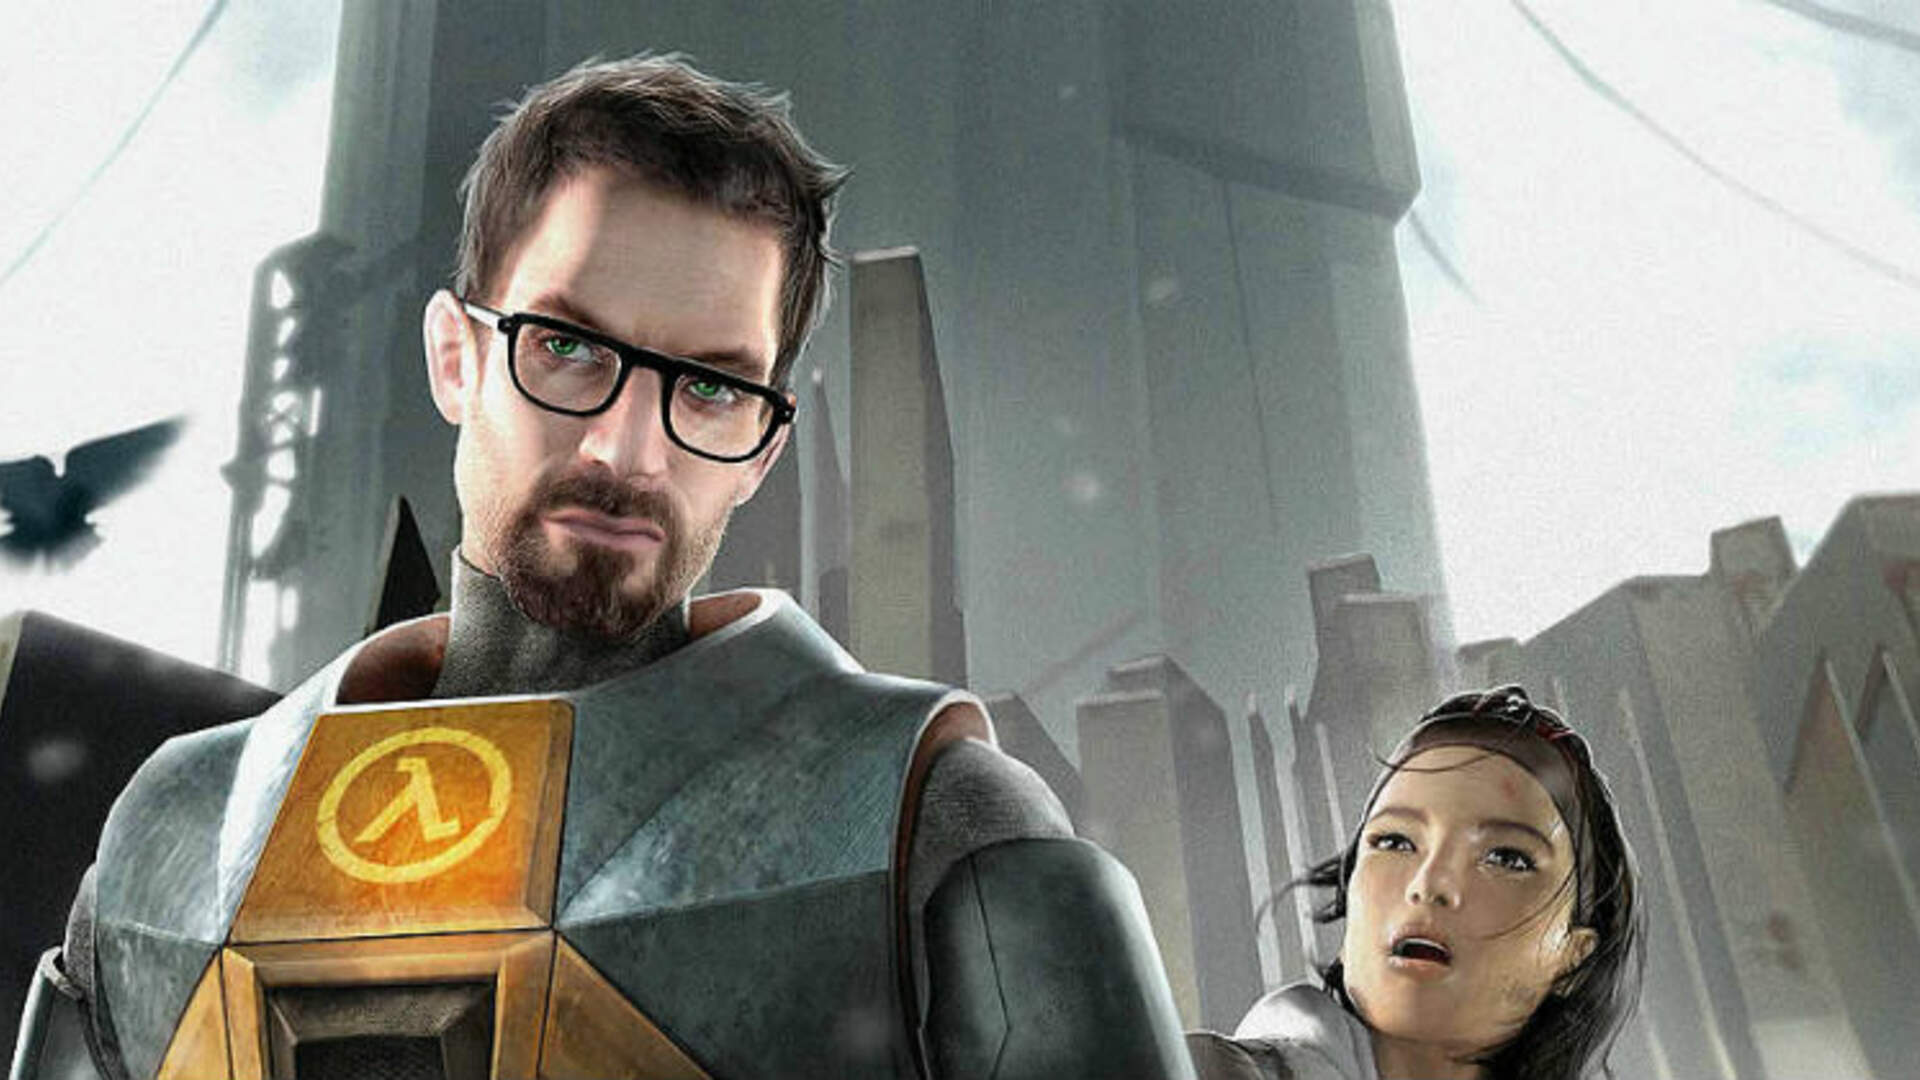 Half Life Writer Marc Laidlaw Publishes What Appears to be The Plot of Half Life 3